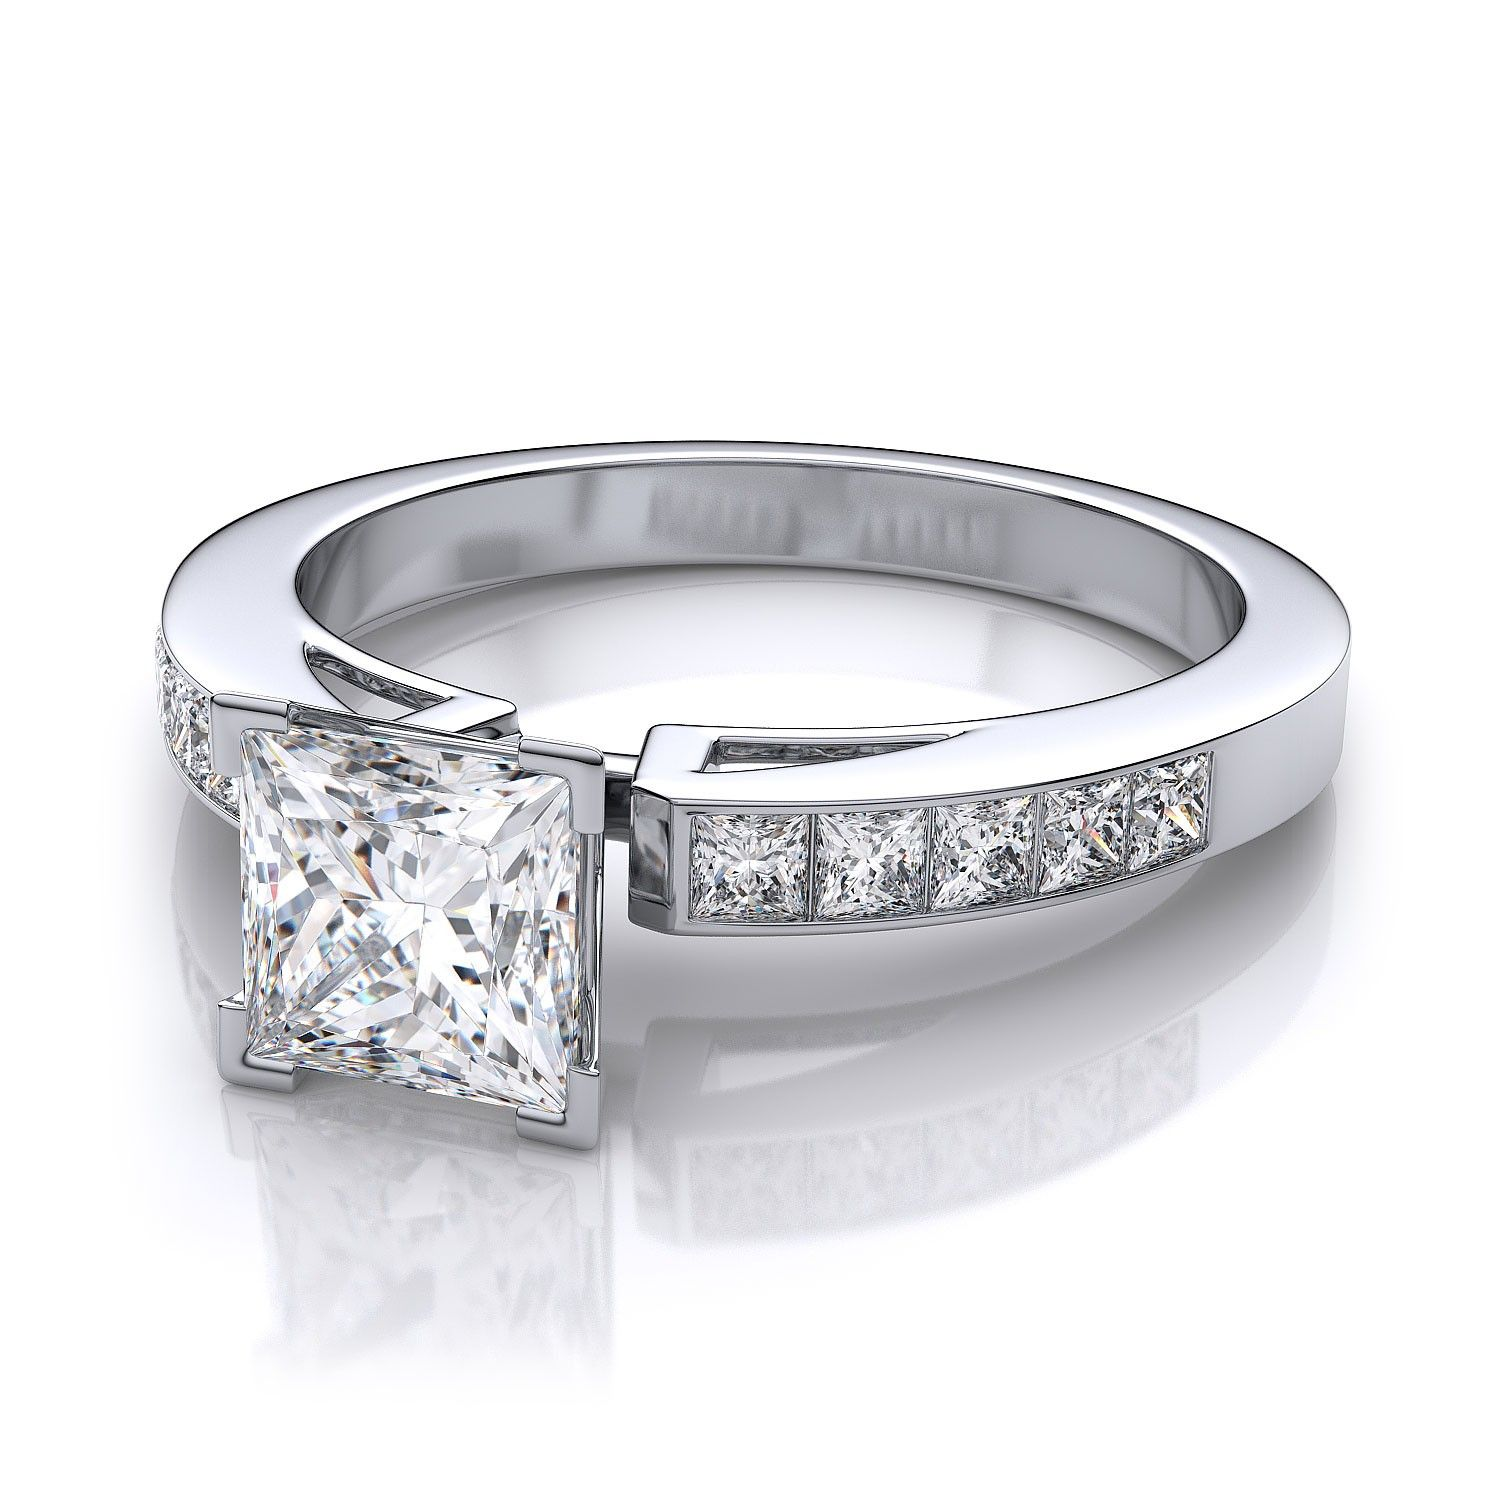 designer jewellery settings ring wedding engagement matching bands